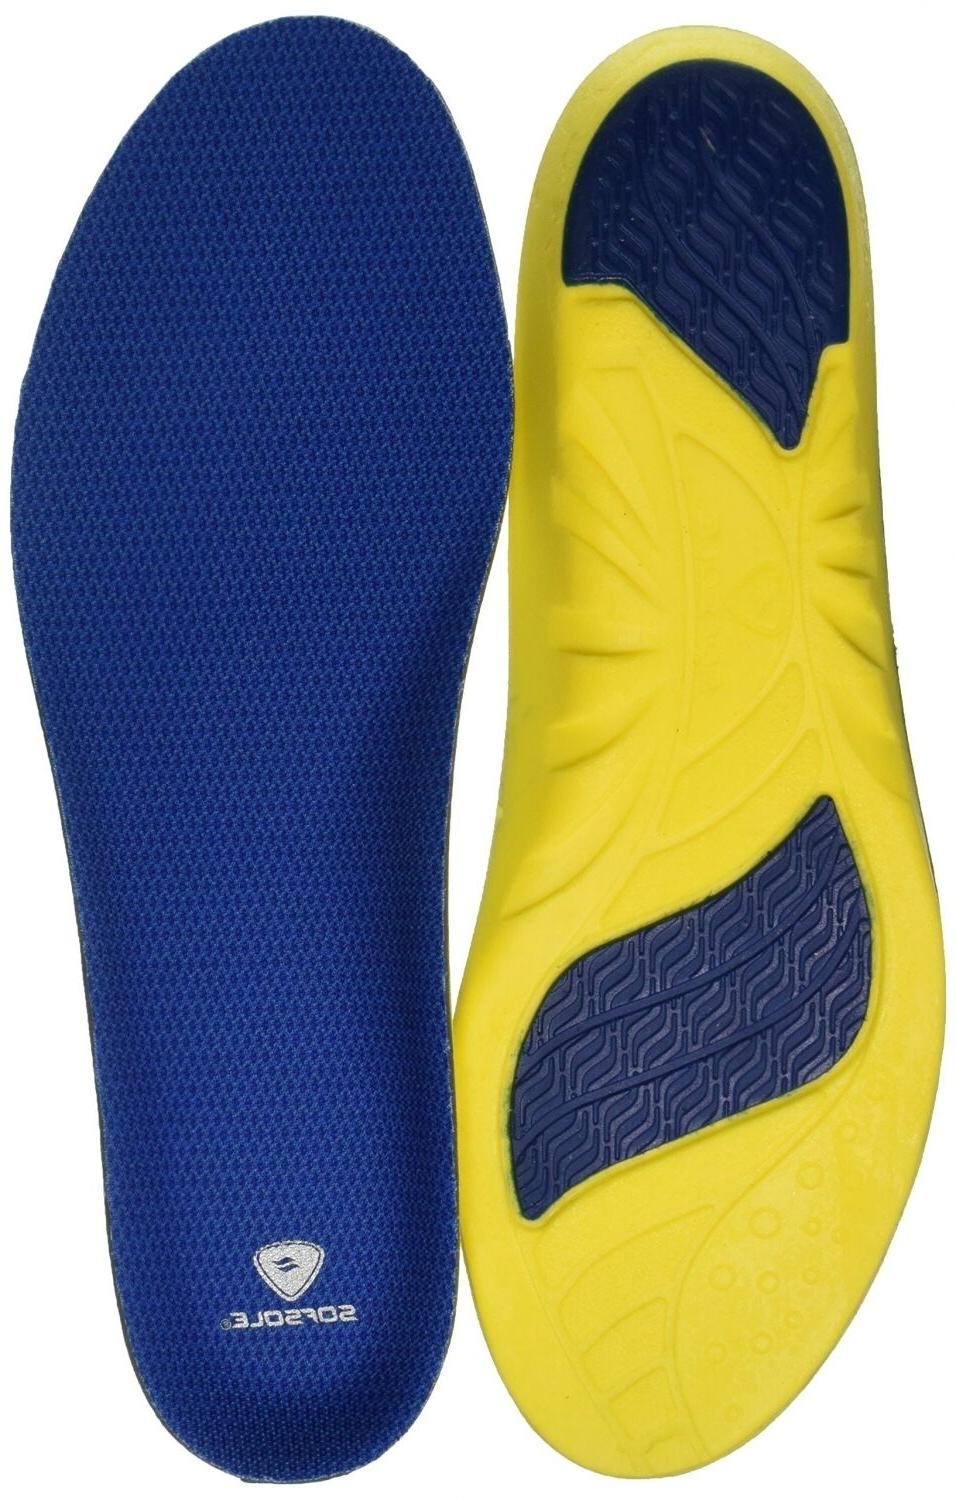 Sof Sole Shoe Insoles Inserts For Sole